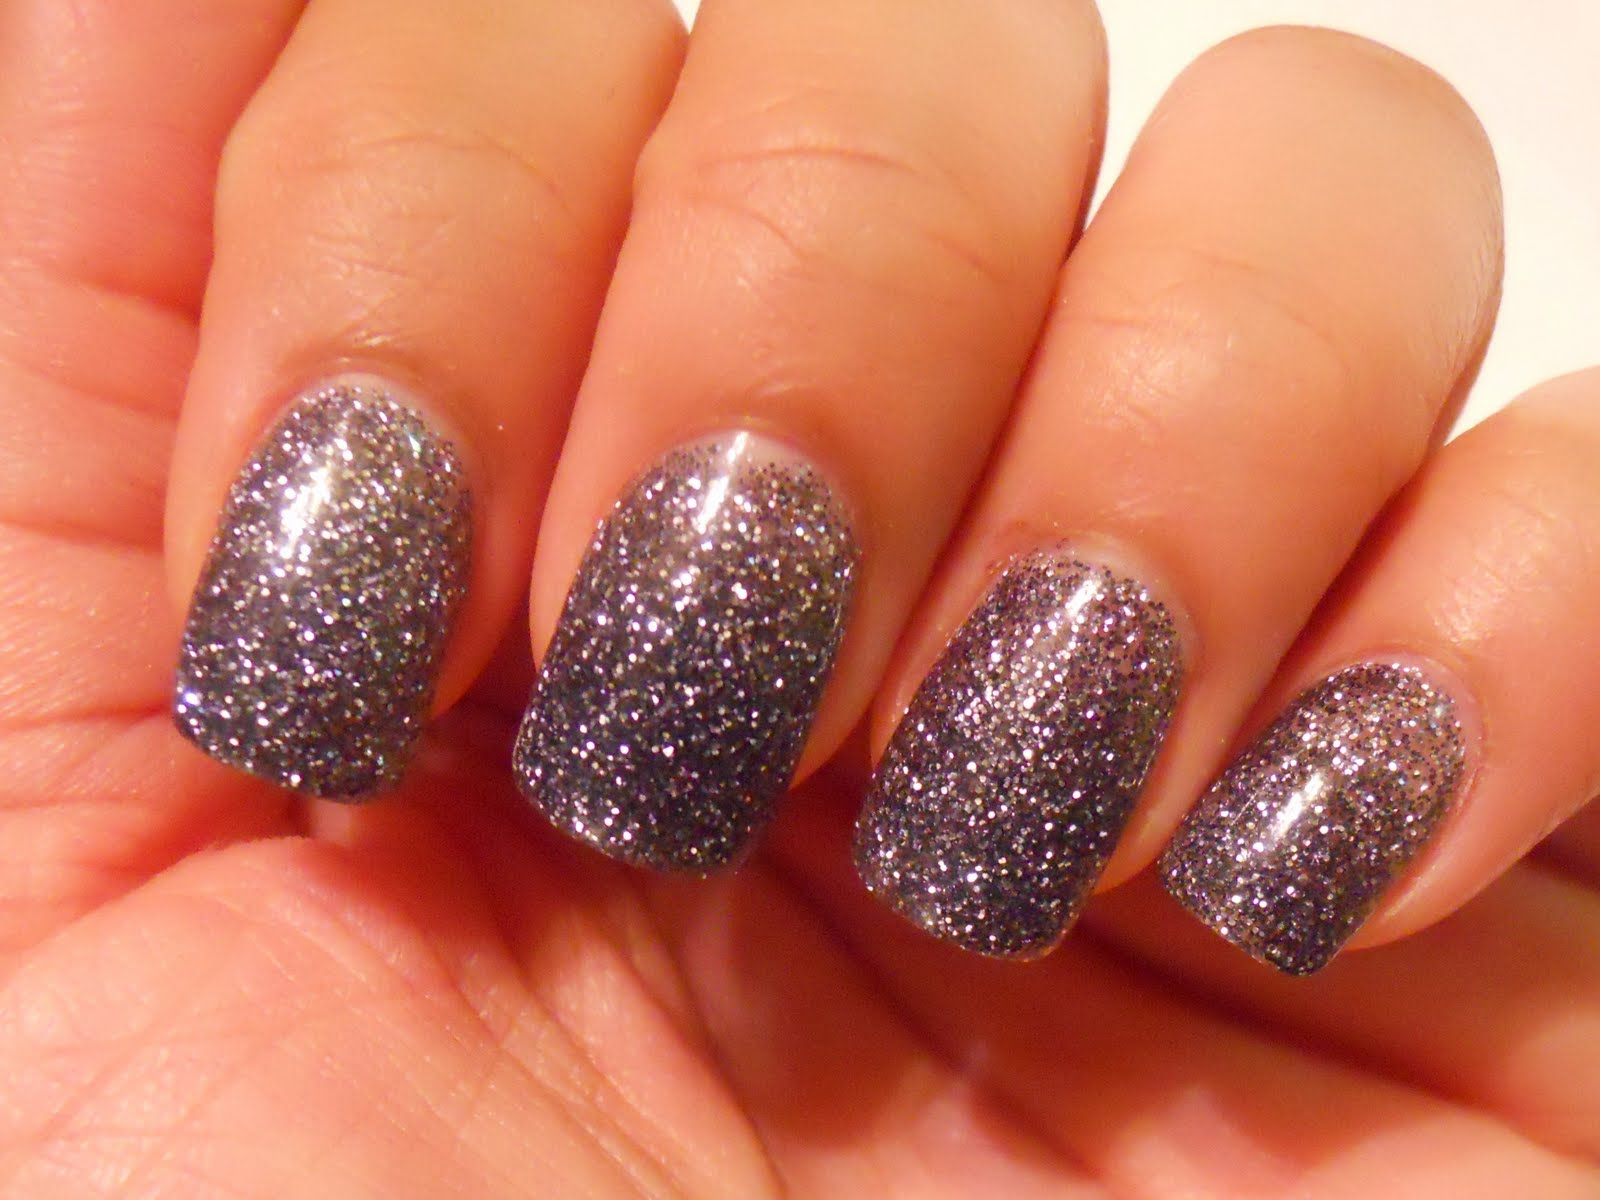 yummy411....get it here!: My new nails: Charcoal Gray/Black with ...